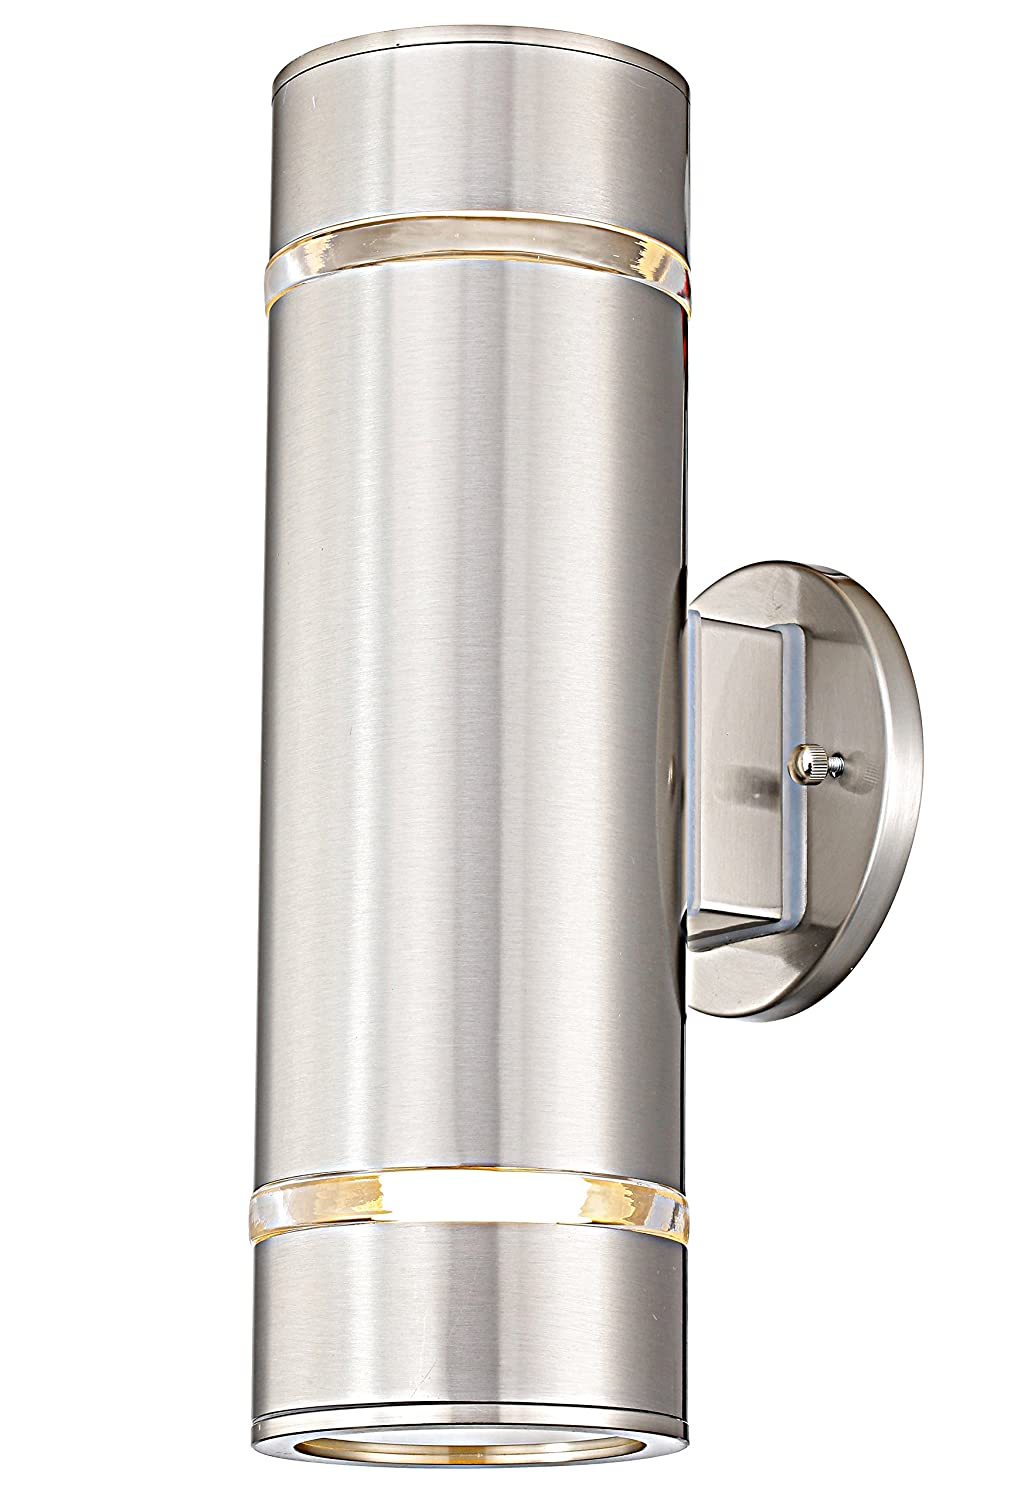 Cerdeco Aureole-Series Modern Porch Light [ UL-Listed ] Stainless Steel Satin Nickel Finished Outdoor Wall Lamp Weather-Proof Cylinder Wall Sconce Suitable for Garden & Patio